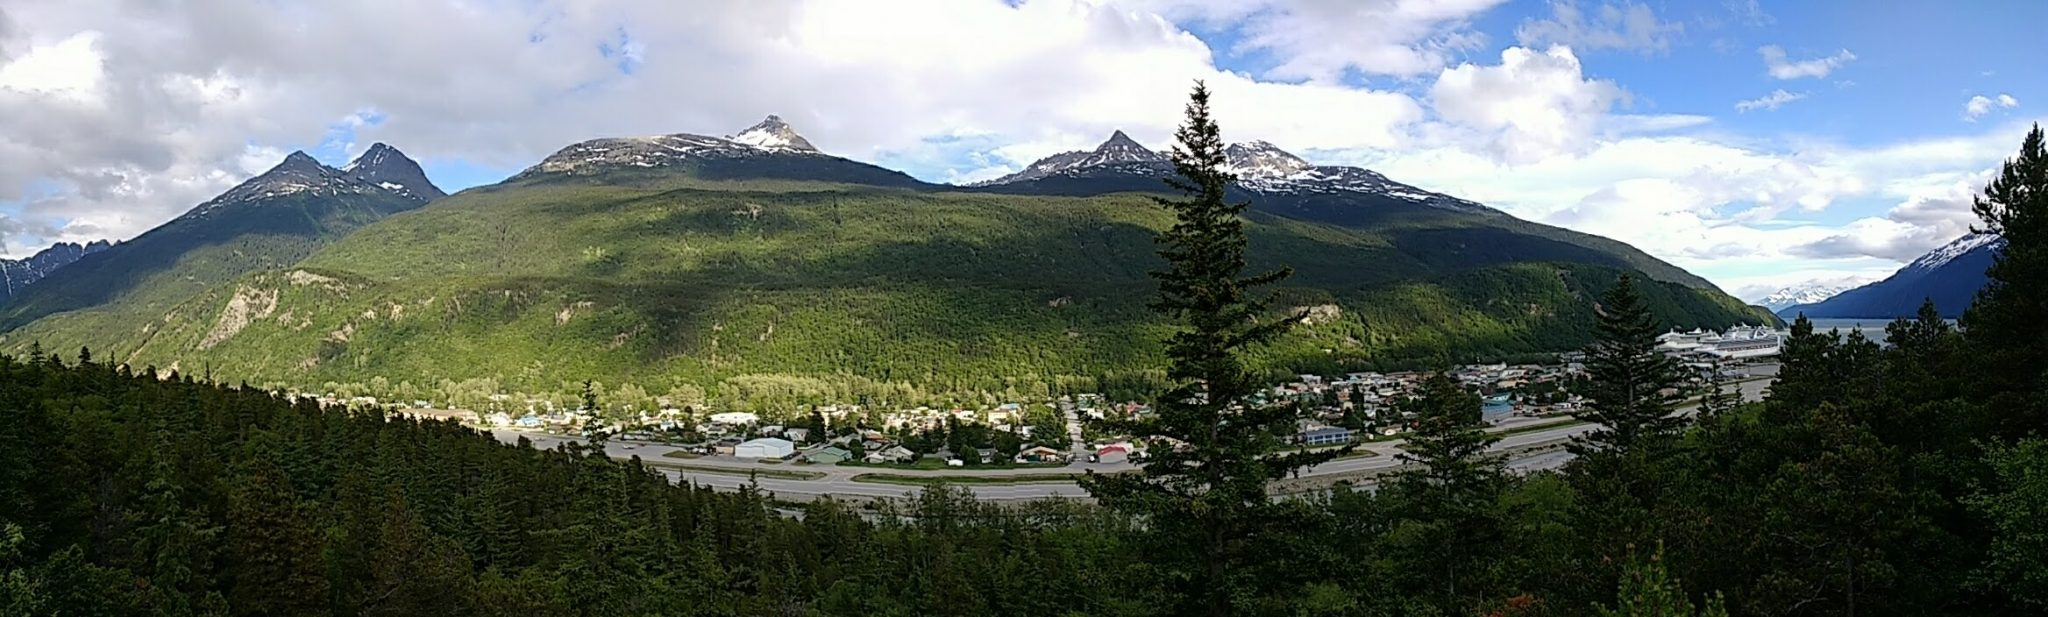 Panoramic photo of a small Alaskan town with several cruise ships in port. There are tree covered hills and snowcapped mountains in the distance. It's partly cloudy.